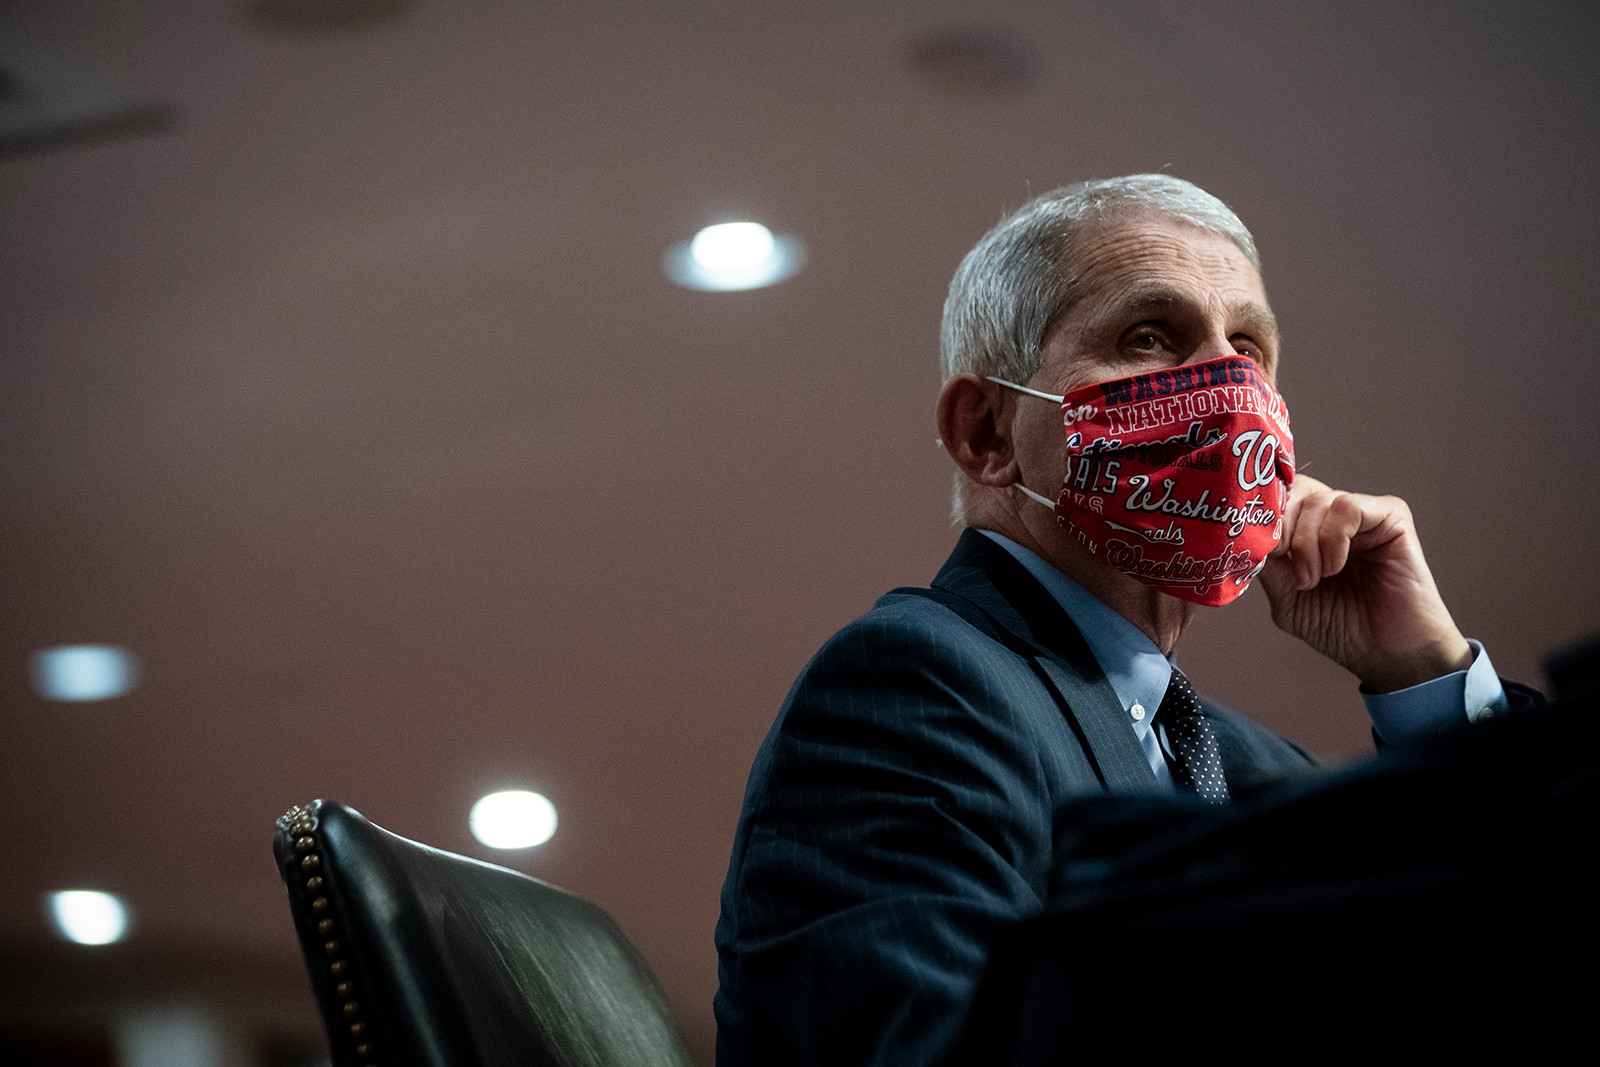 Dr. Anthony Fauci, director of the National Institute of Allergy and Infectious Diseases, wears a face covering as he listens during a Senate Health, Education, Labor and Pensions Committee hearing on June 30, in Washington.